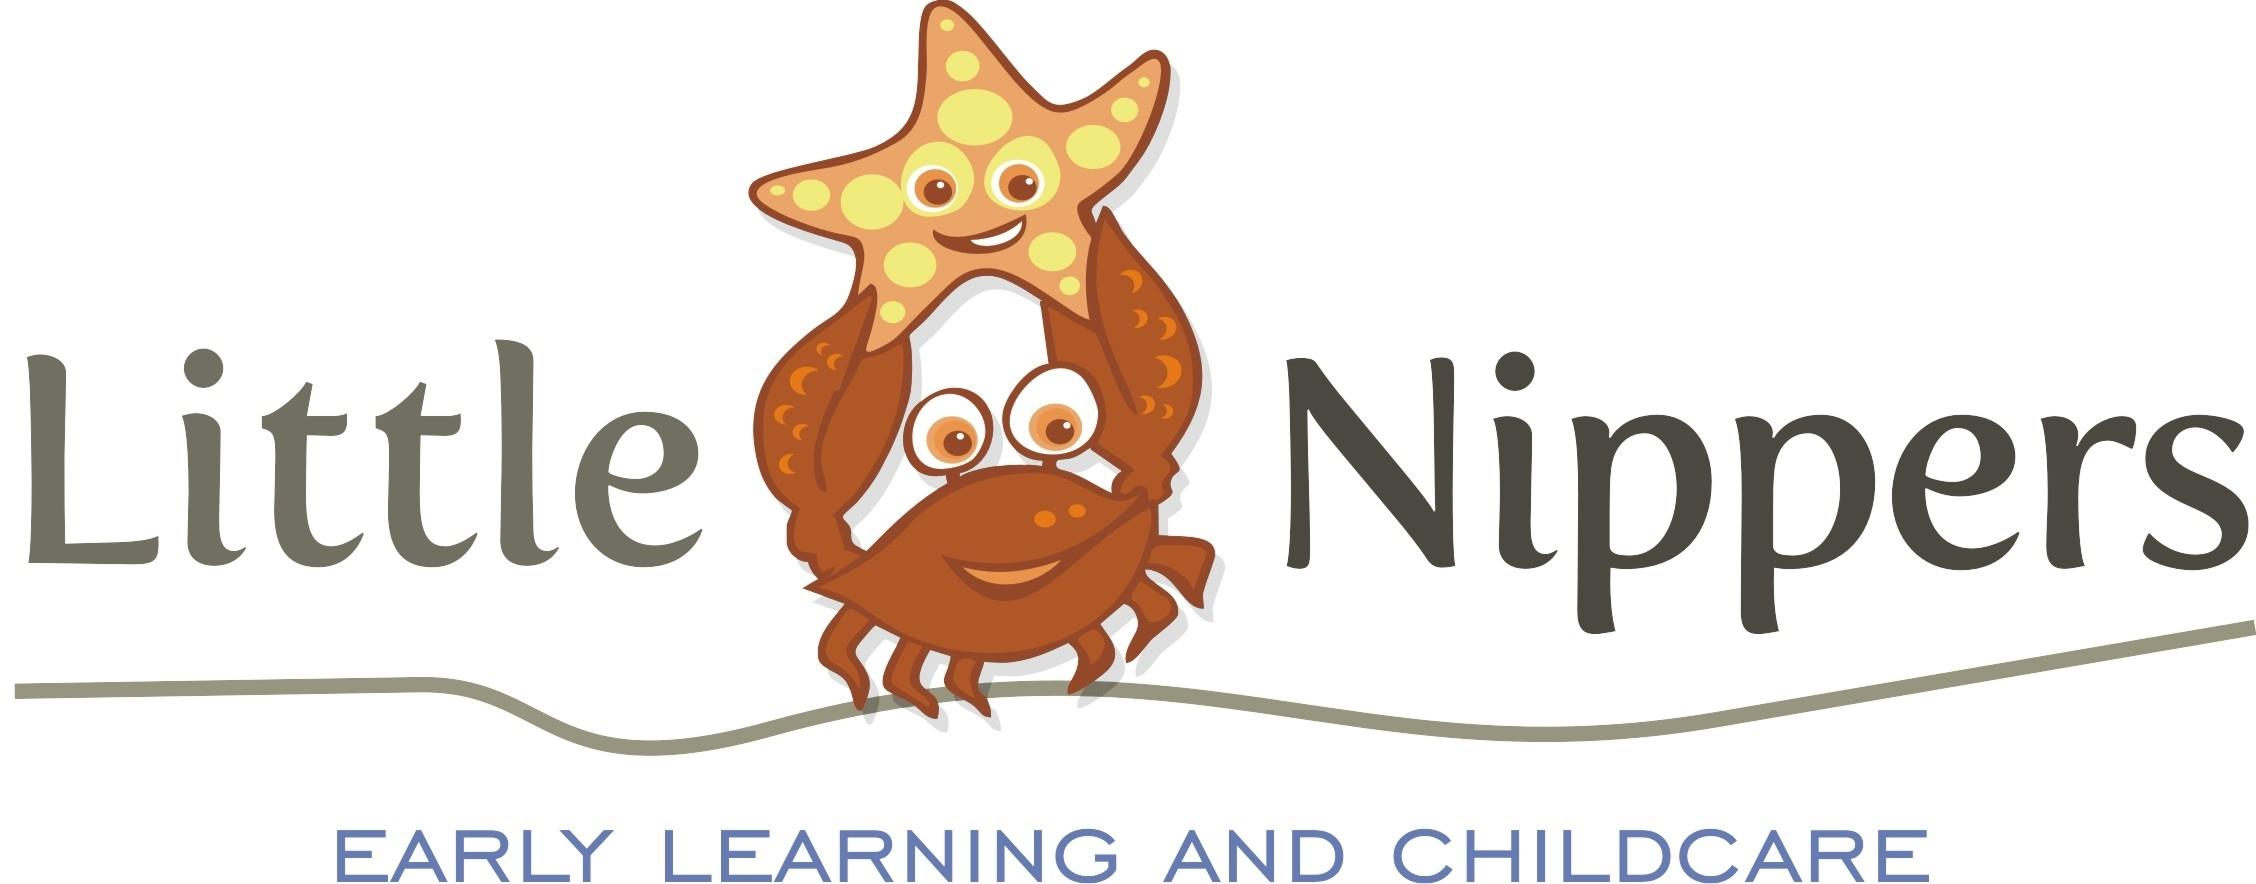 Little Nippers Early Learning and Childcare